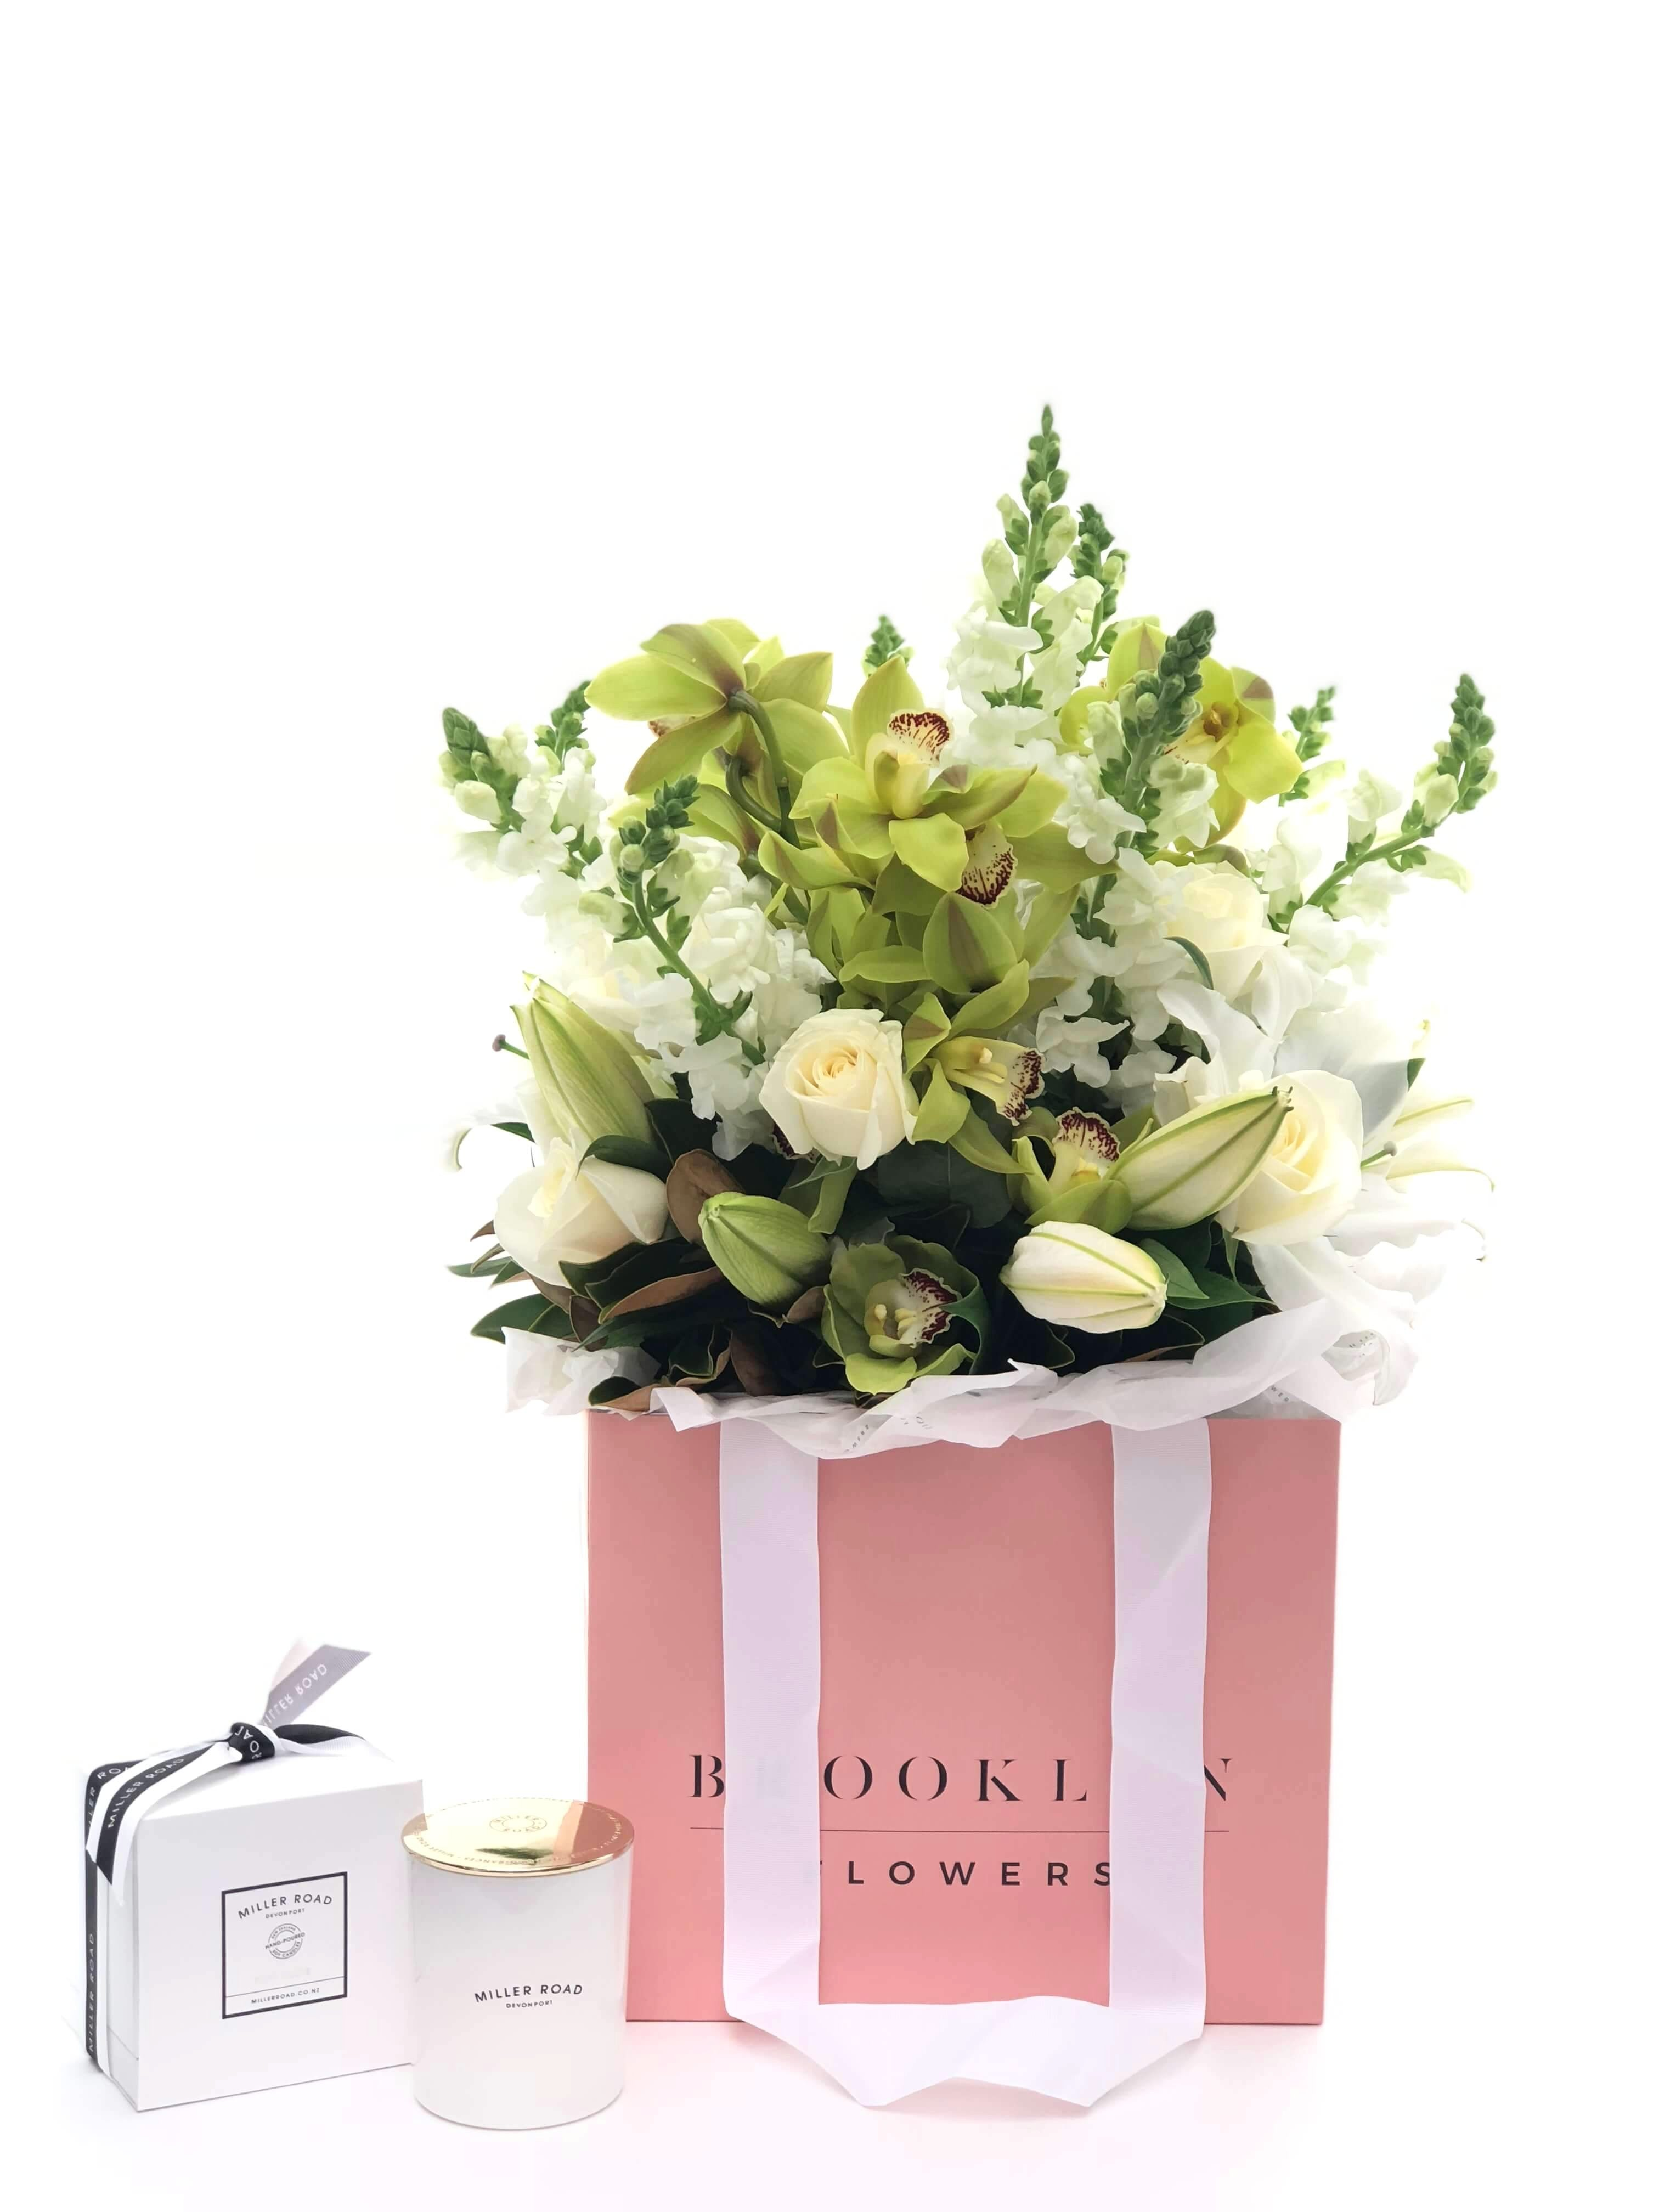 Bouquet Bag and Gift Package, Bouquet Bag & Candle, Bouquet, Serene, Brooklyn Flowers, Auckland Florist